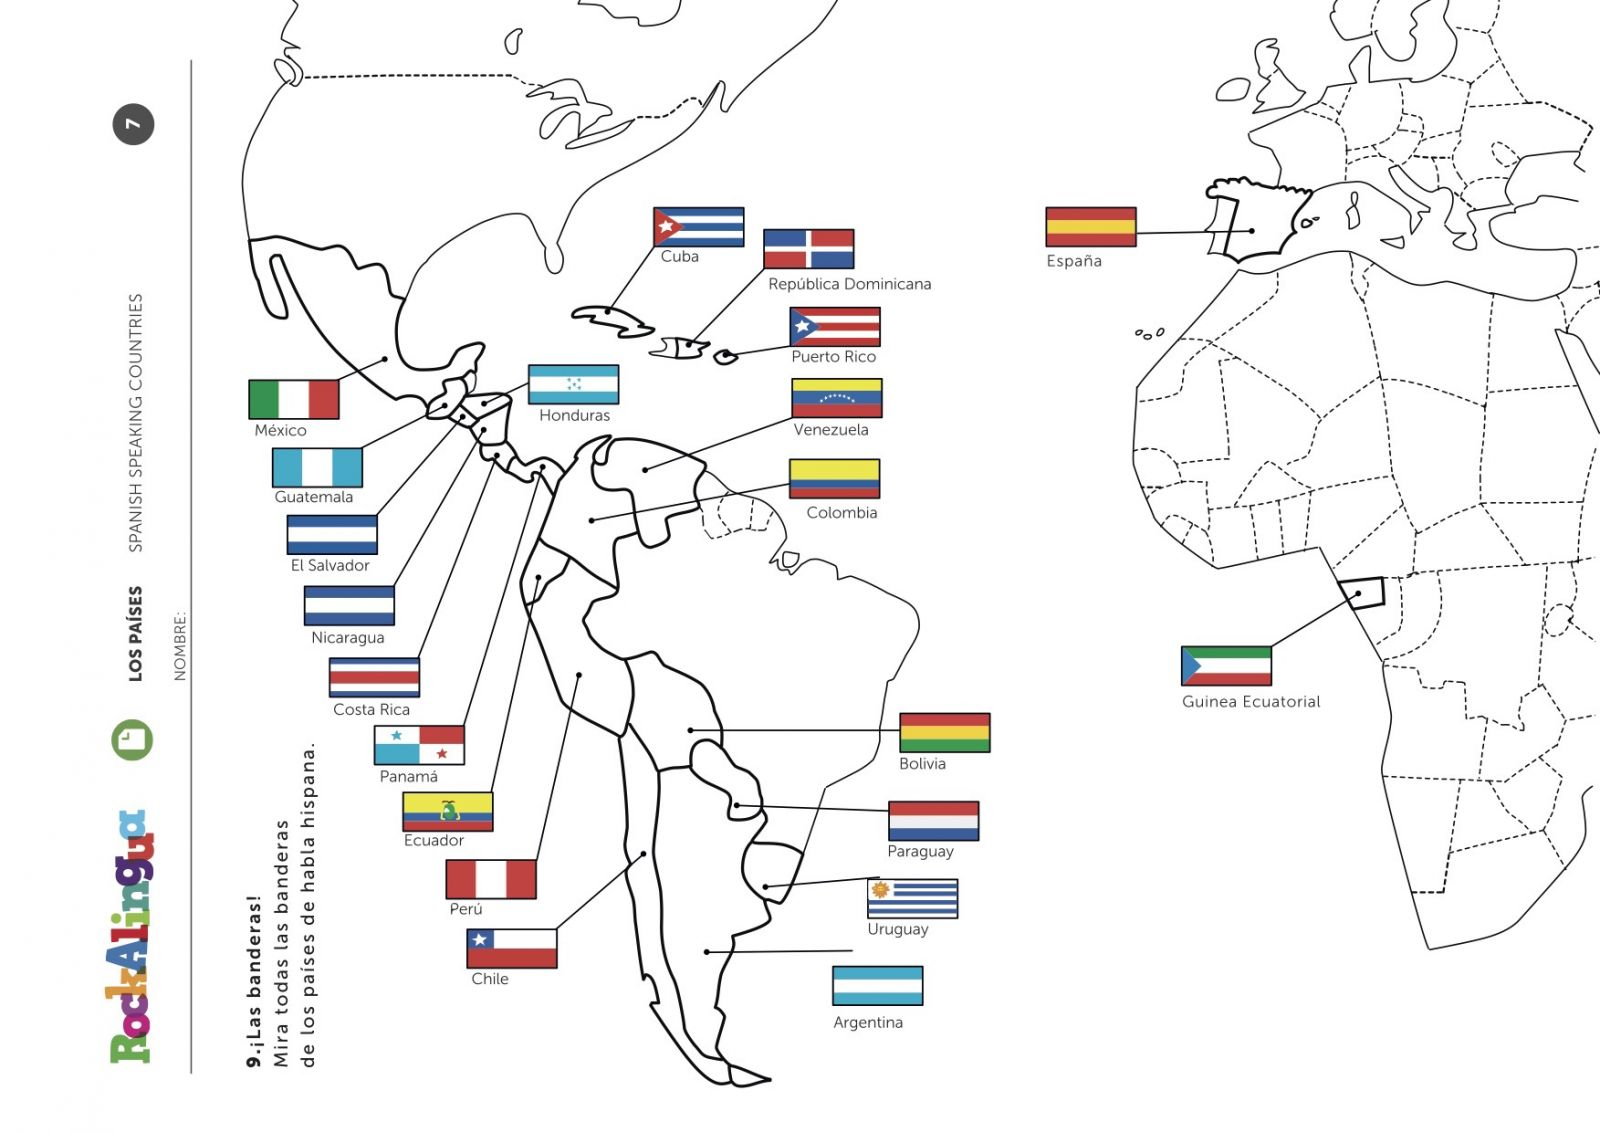 35 Blank Map Of Spanish Speaking Countries